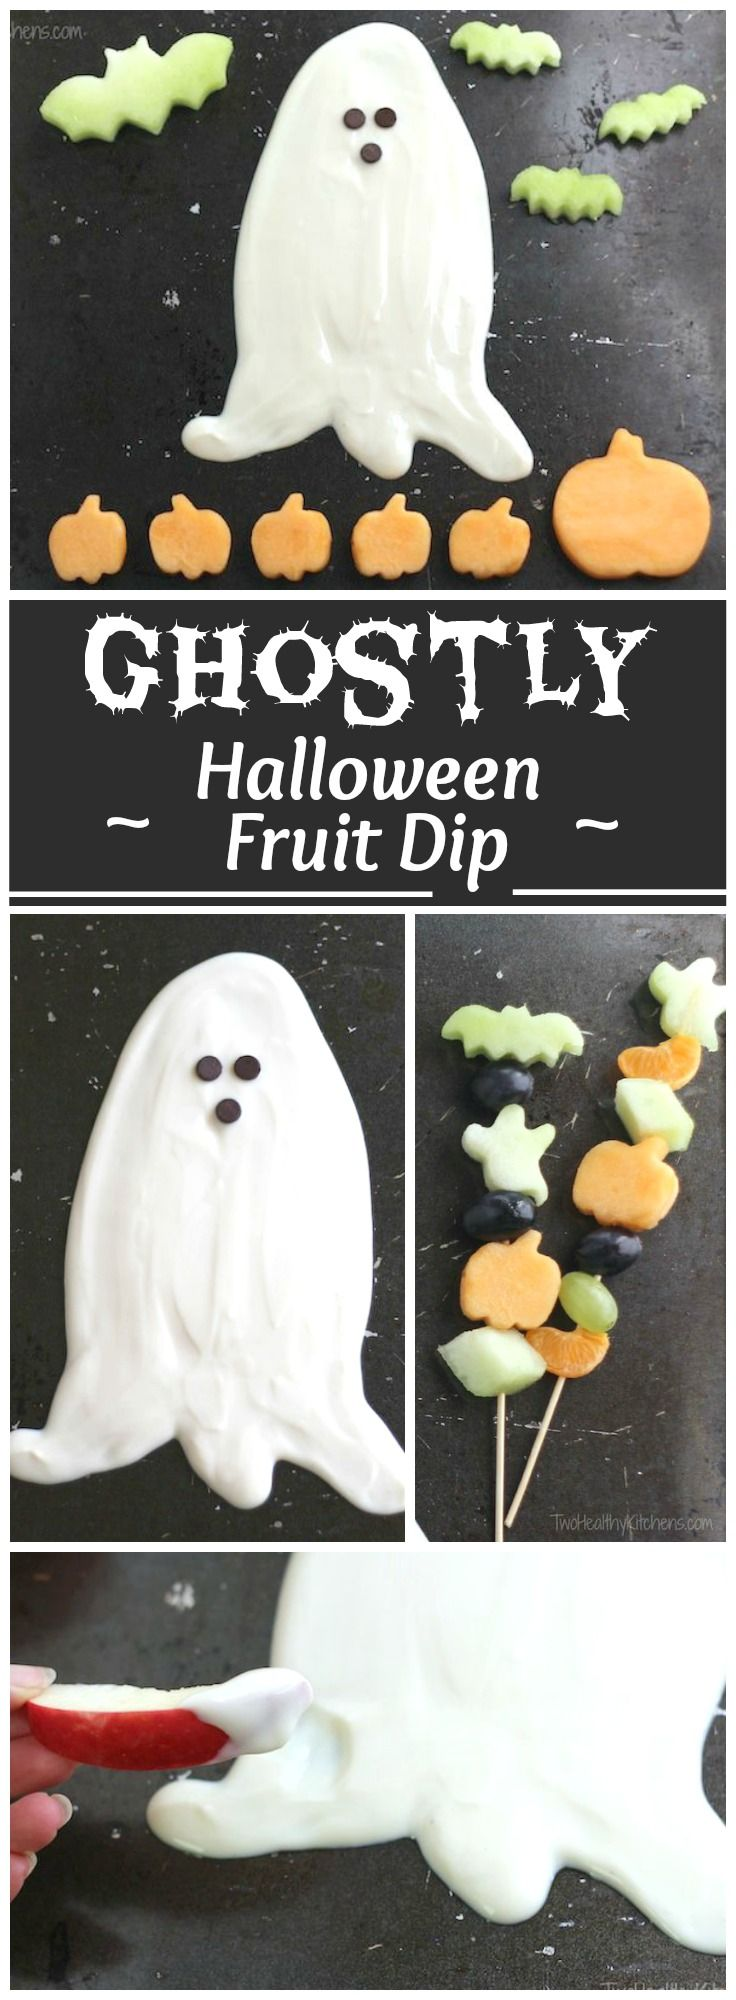 Food faith amp design thanksgiving goodies - Ghostly Halloween Fruit Dip Yet Another Healthy Halloween Treat